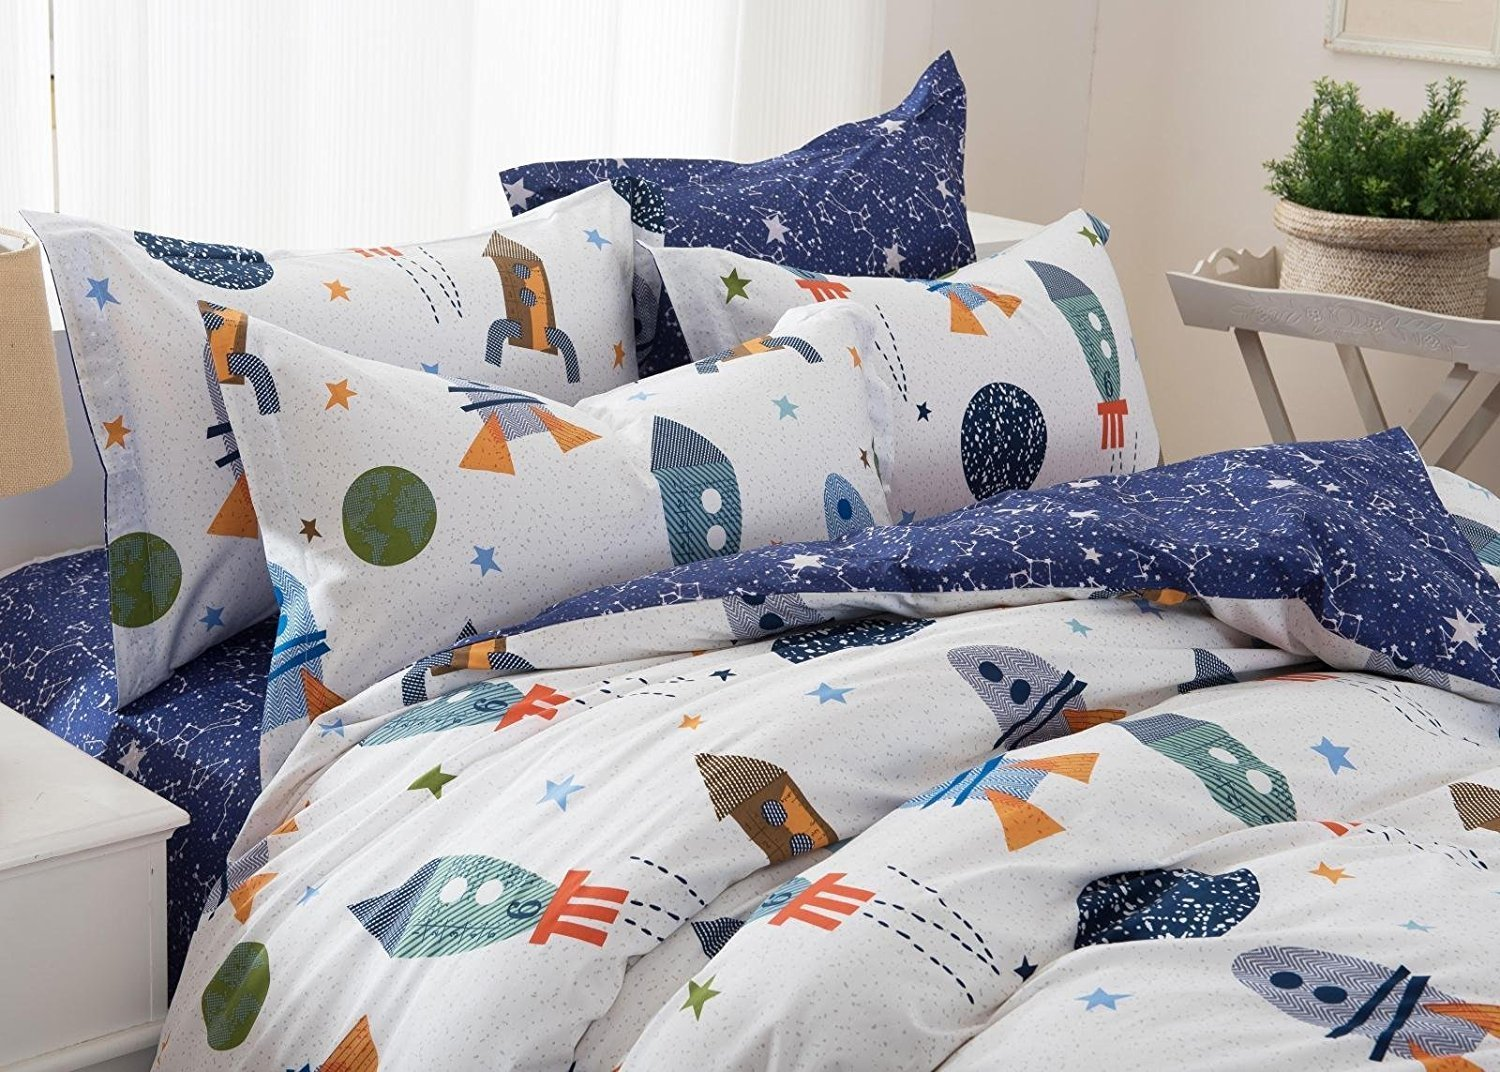 Brandream Kids Bedding Set Galaxy Space Bedding Set 100% Cotton Duvet Cover Set 3-Piece Full Size(No Comforter Included)